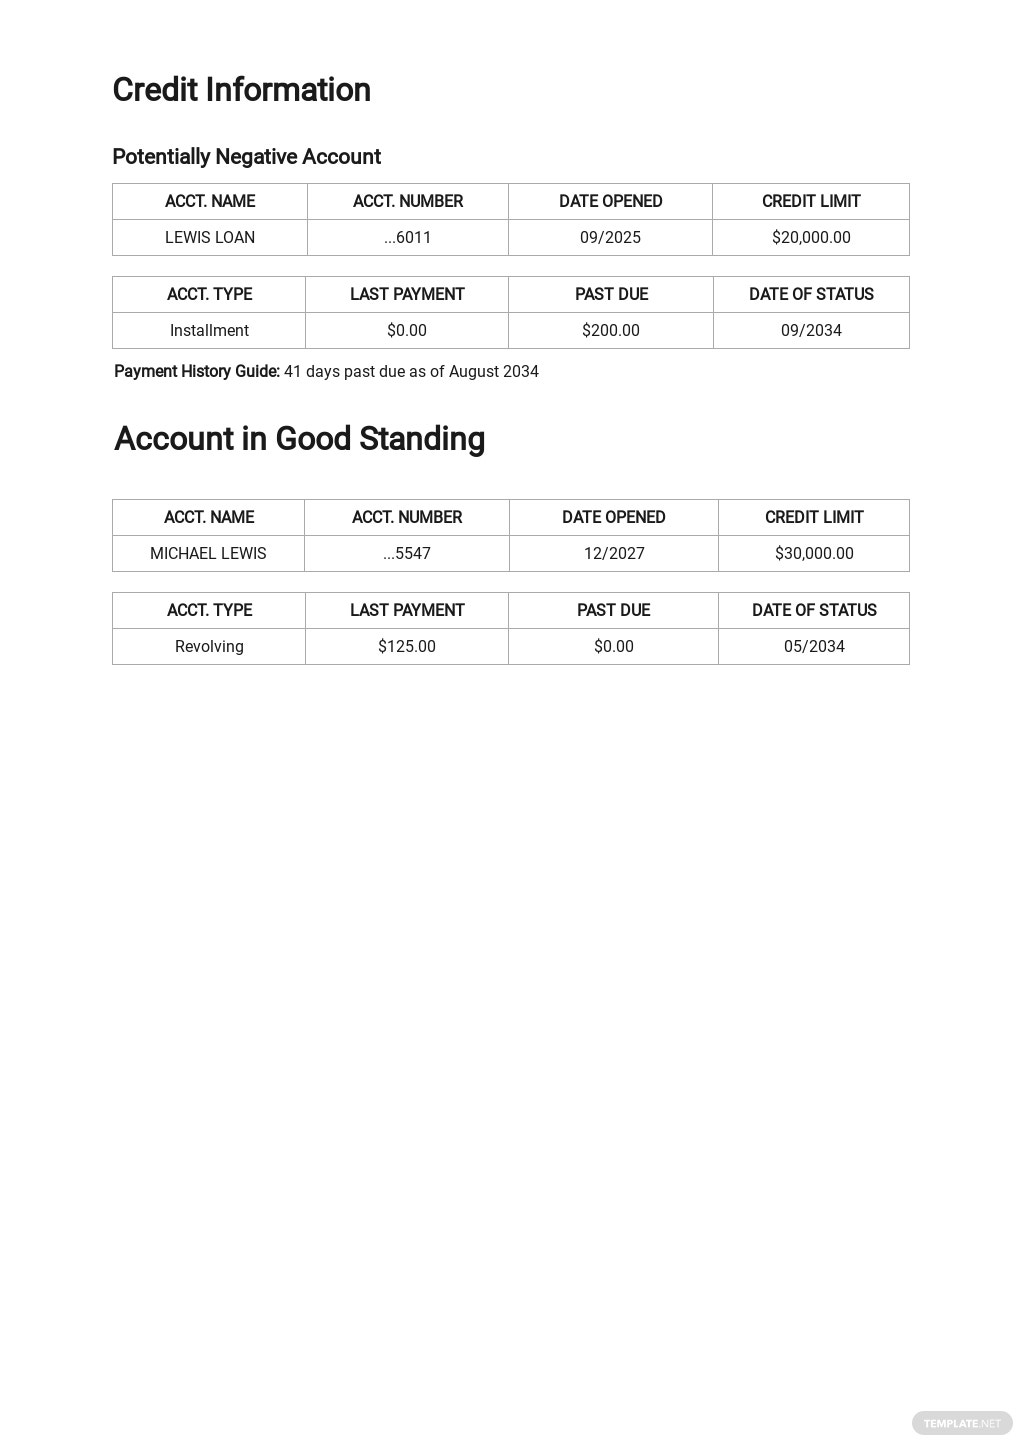 Credit Report Authorization Form Template  2.jpe